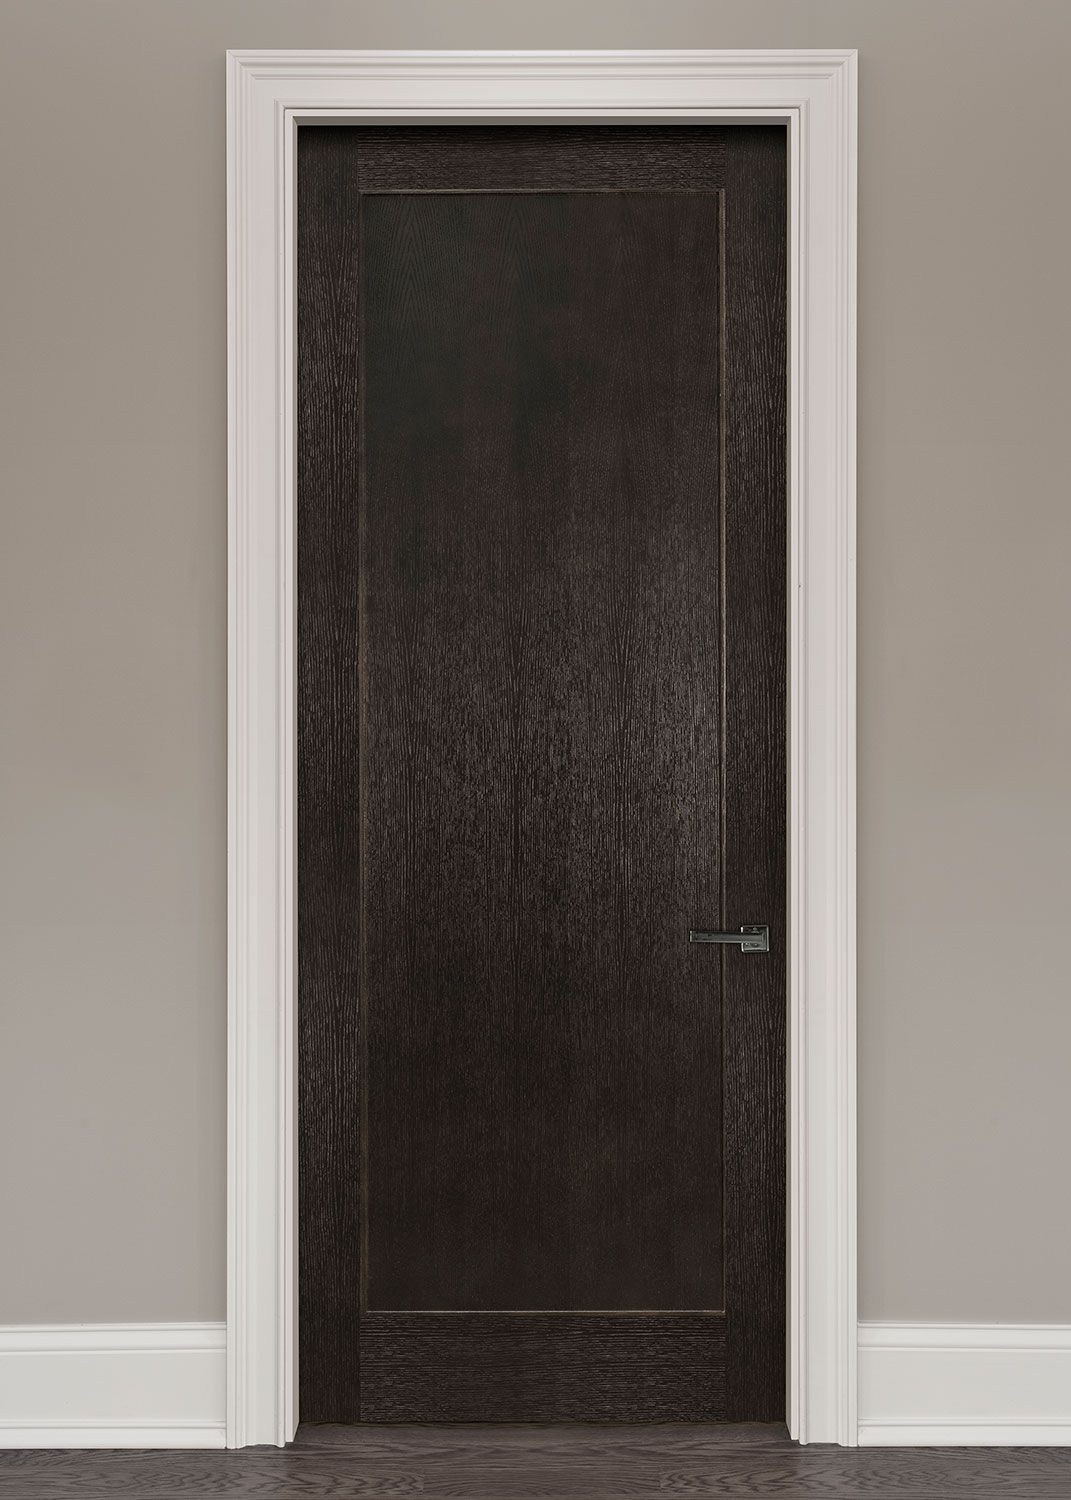 Modern Interior Doors Gdim Md1005 In 2020 Doors Interior Doors Interior Modern Wood Doors Interior